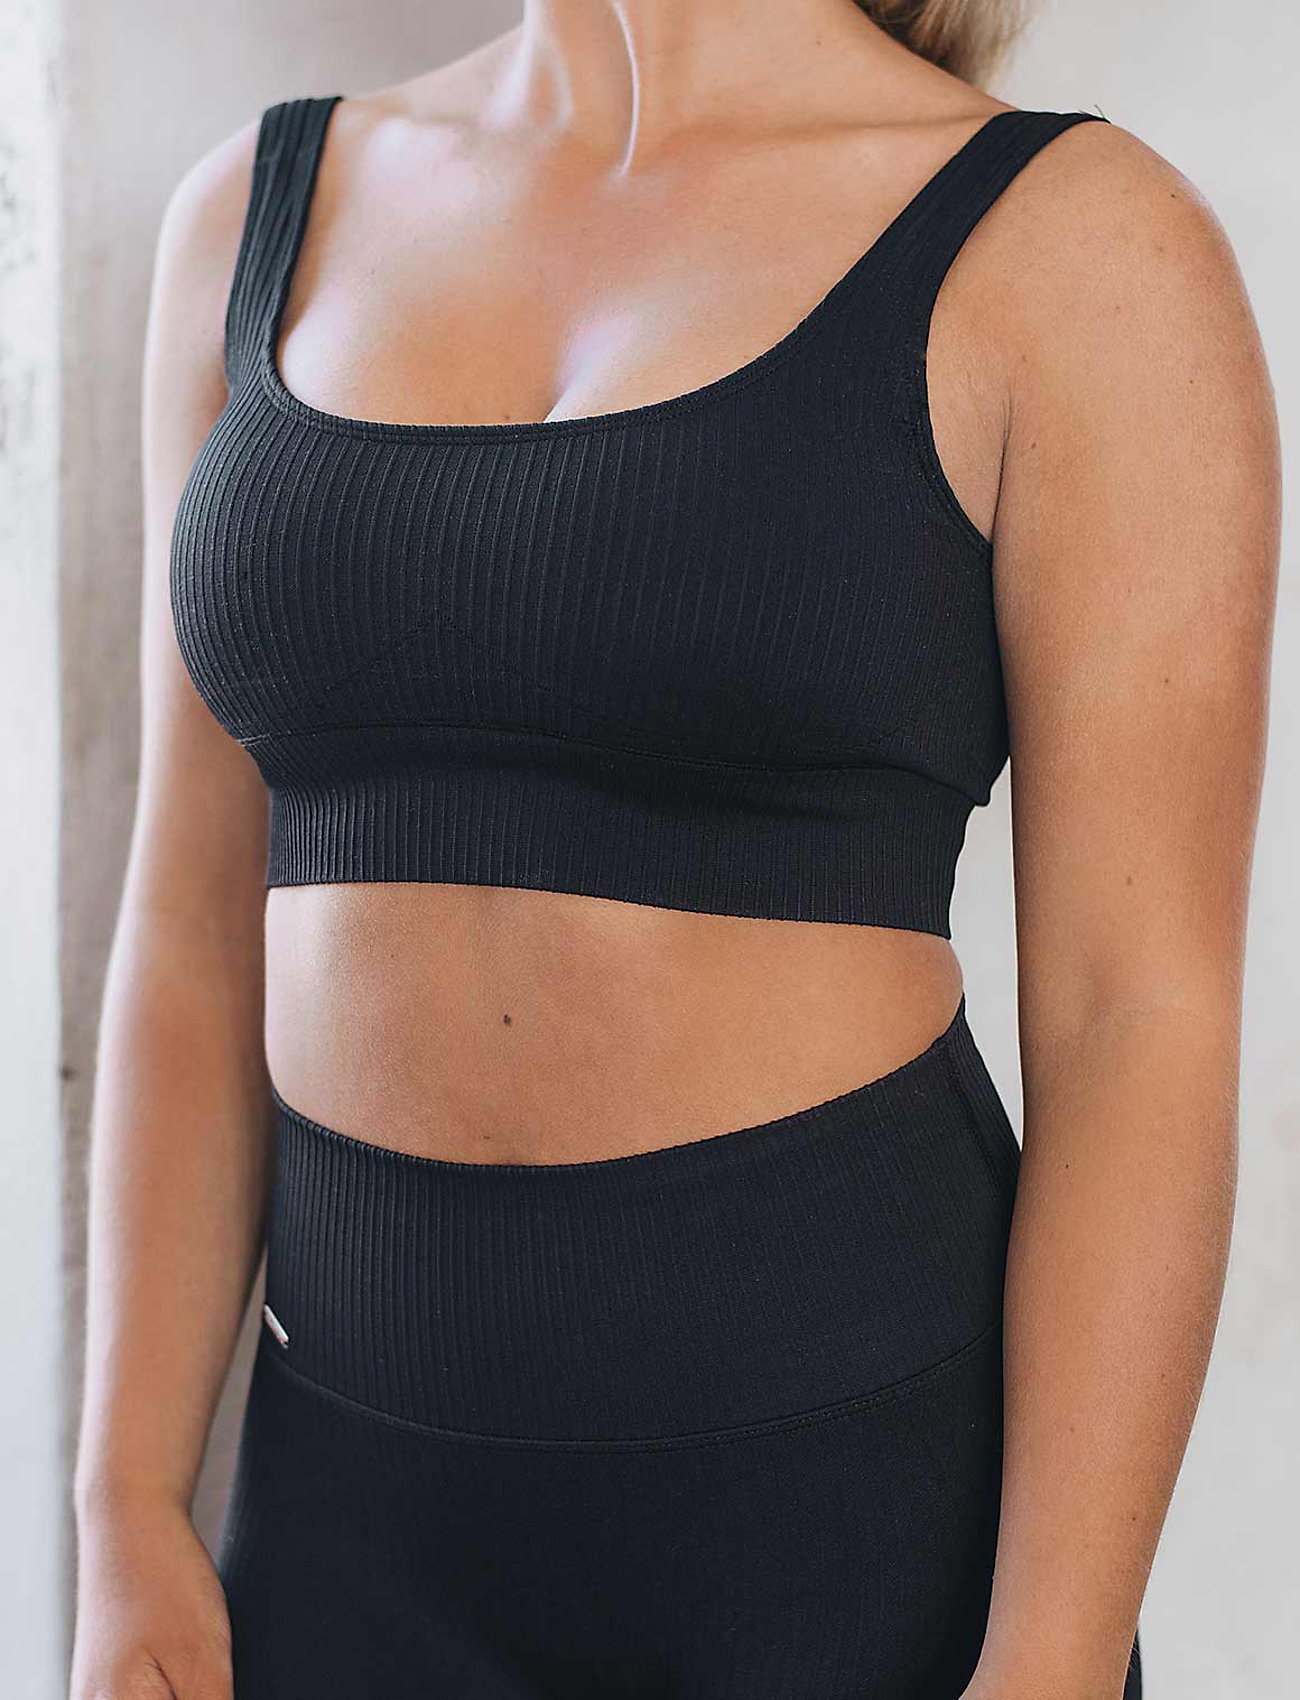 AIM'N - Black Ribbed Seamless Bra - sport bras: medium - black - 0